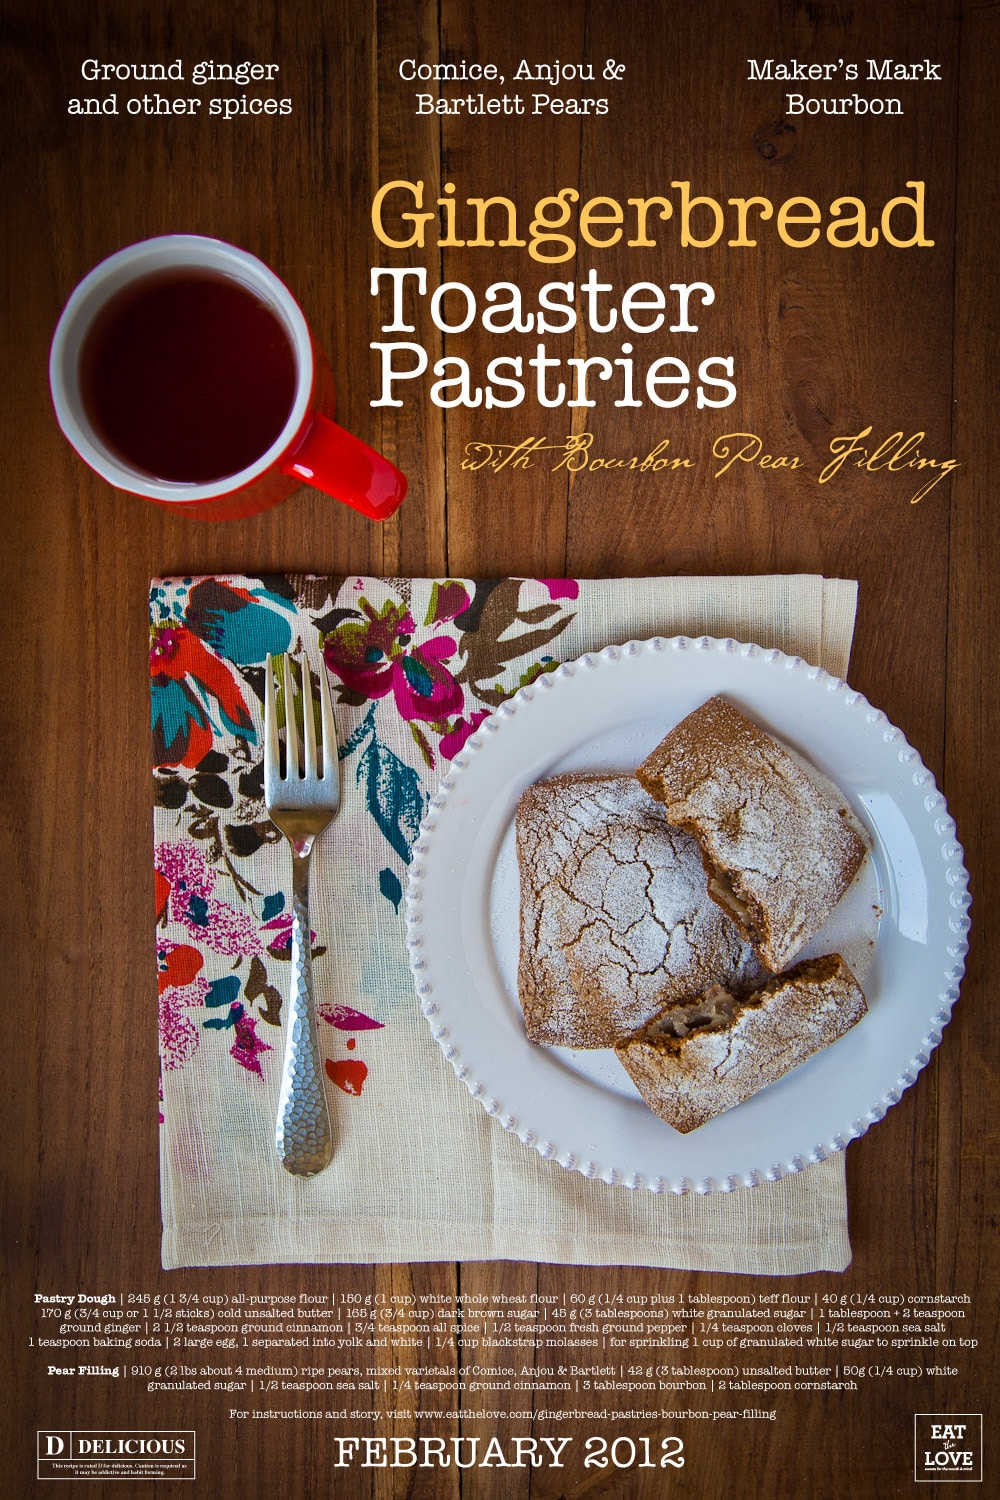 Cooley Zooey: Gingerbread Toaster Pastries with Bourbon Pear Recipe ...